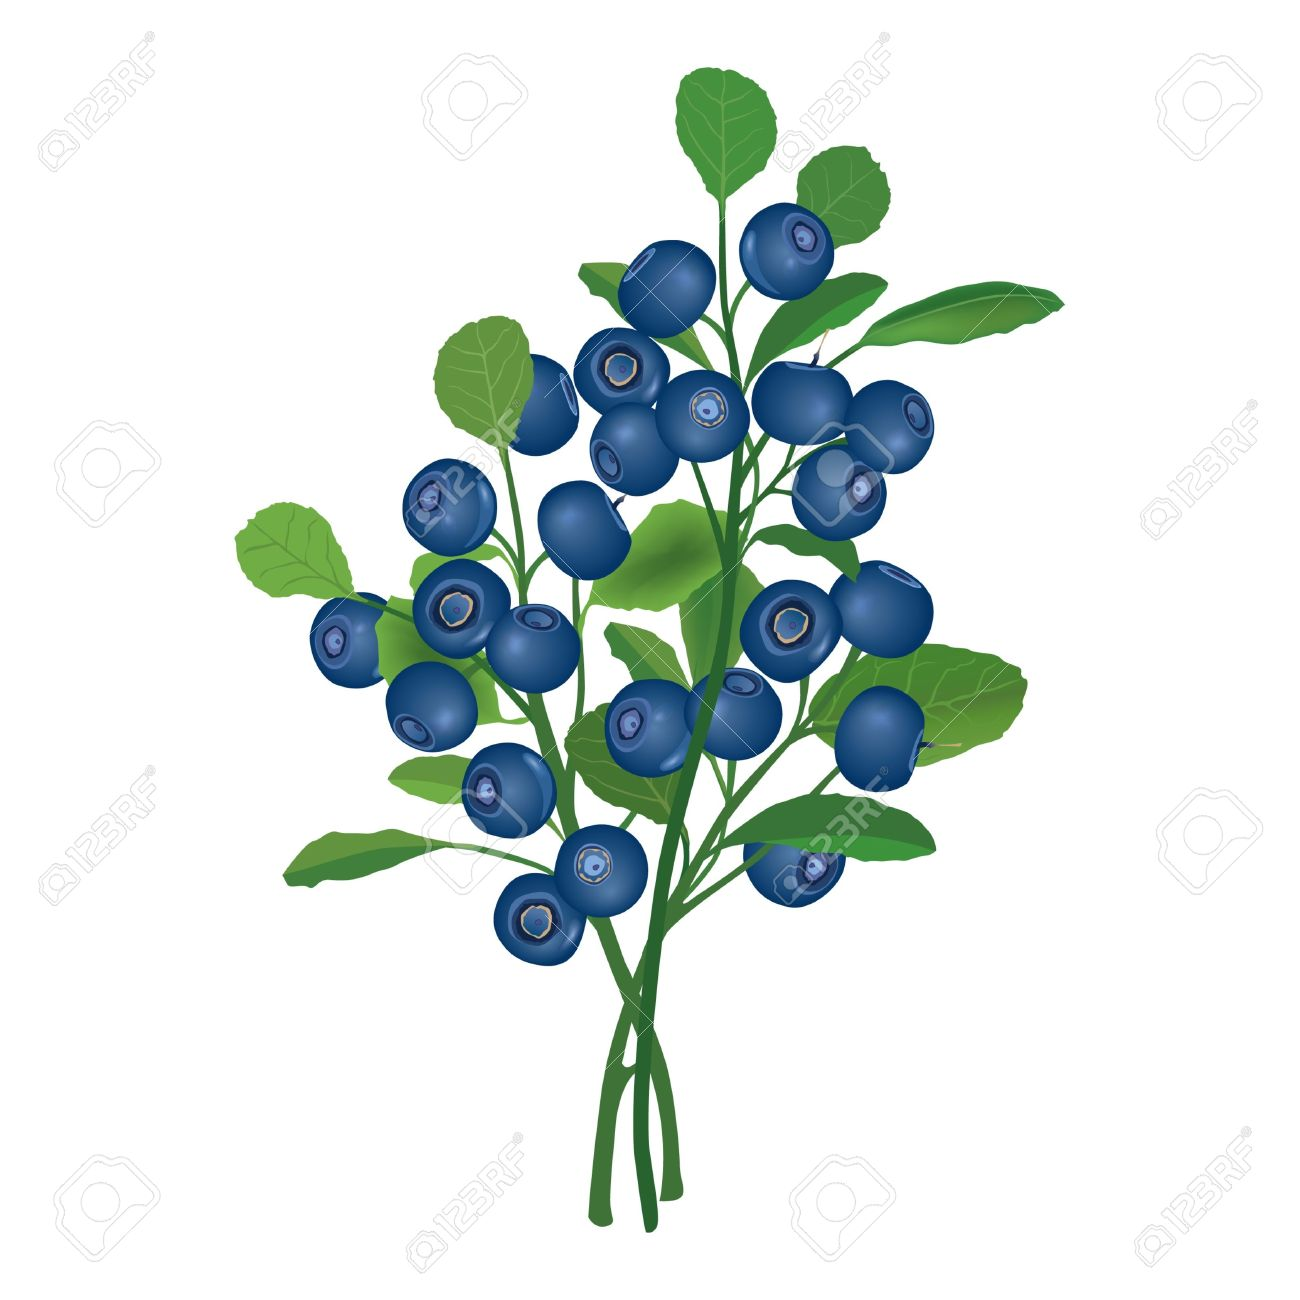 Drawn rose bush thorn bush Blueberry Bush Clipart cliparts Berry